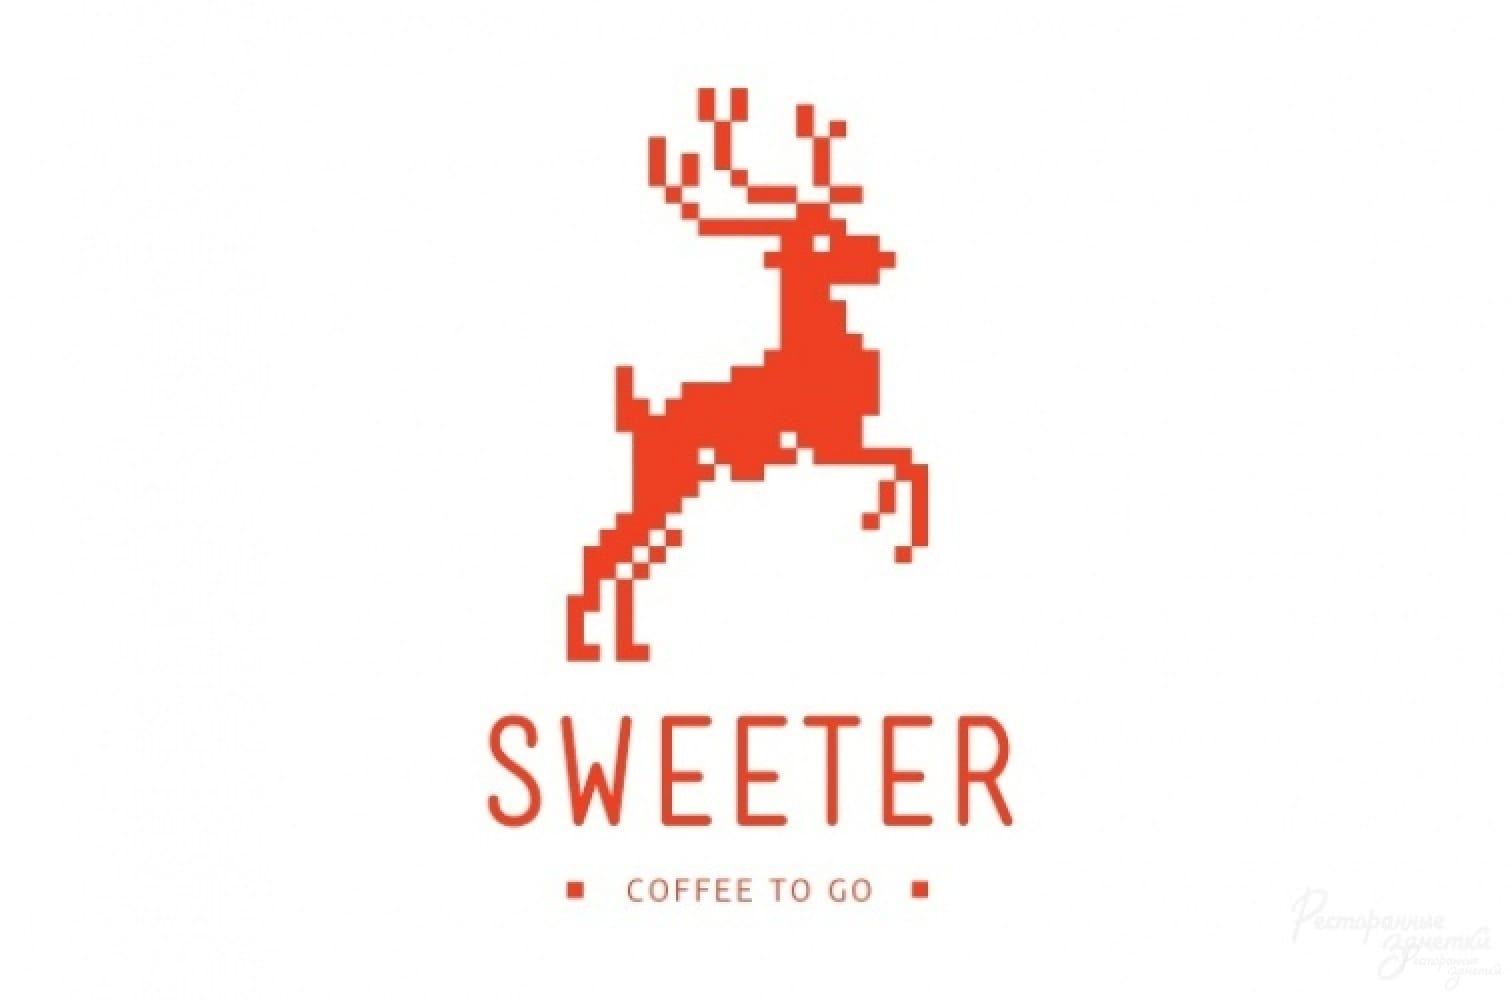 Кофейня SWEETER coffee to go в ТРЦ Магелан